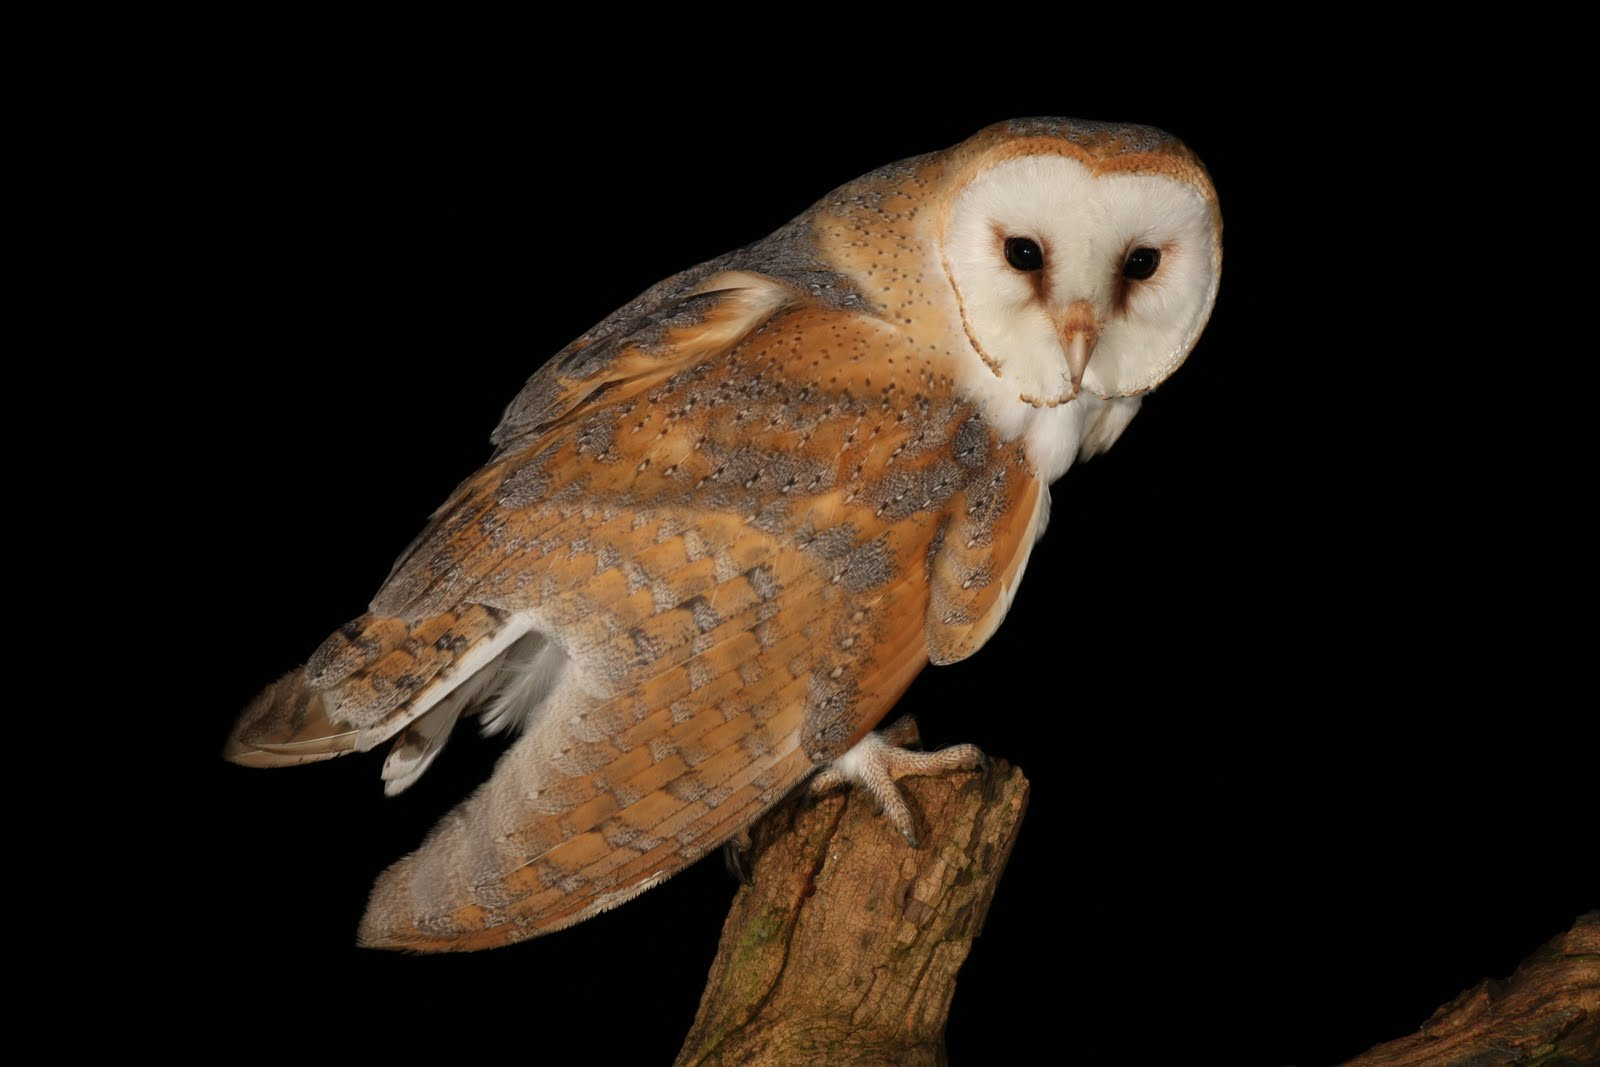 A Day In the Life of a Wildlife Artist: Barn Owl Sighting